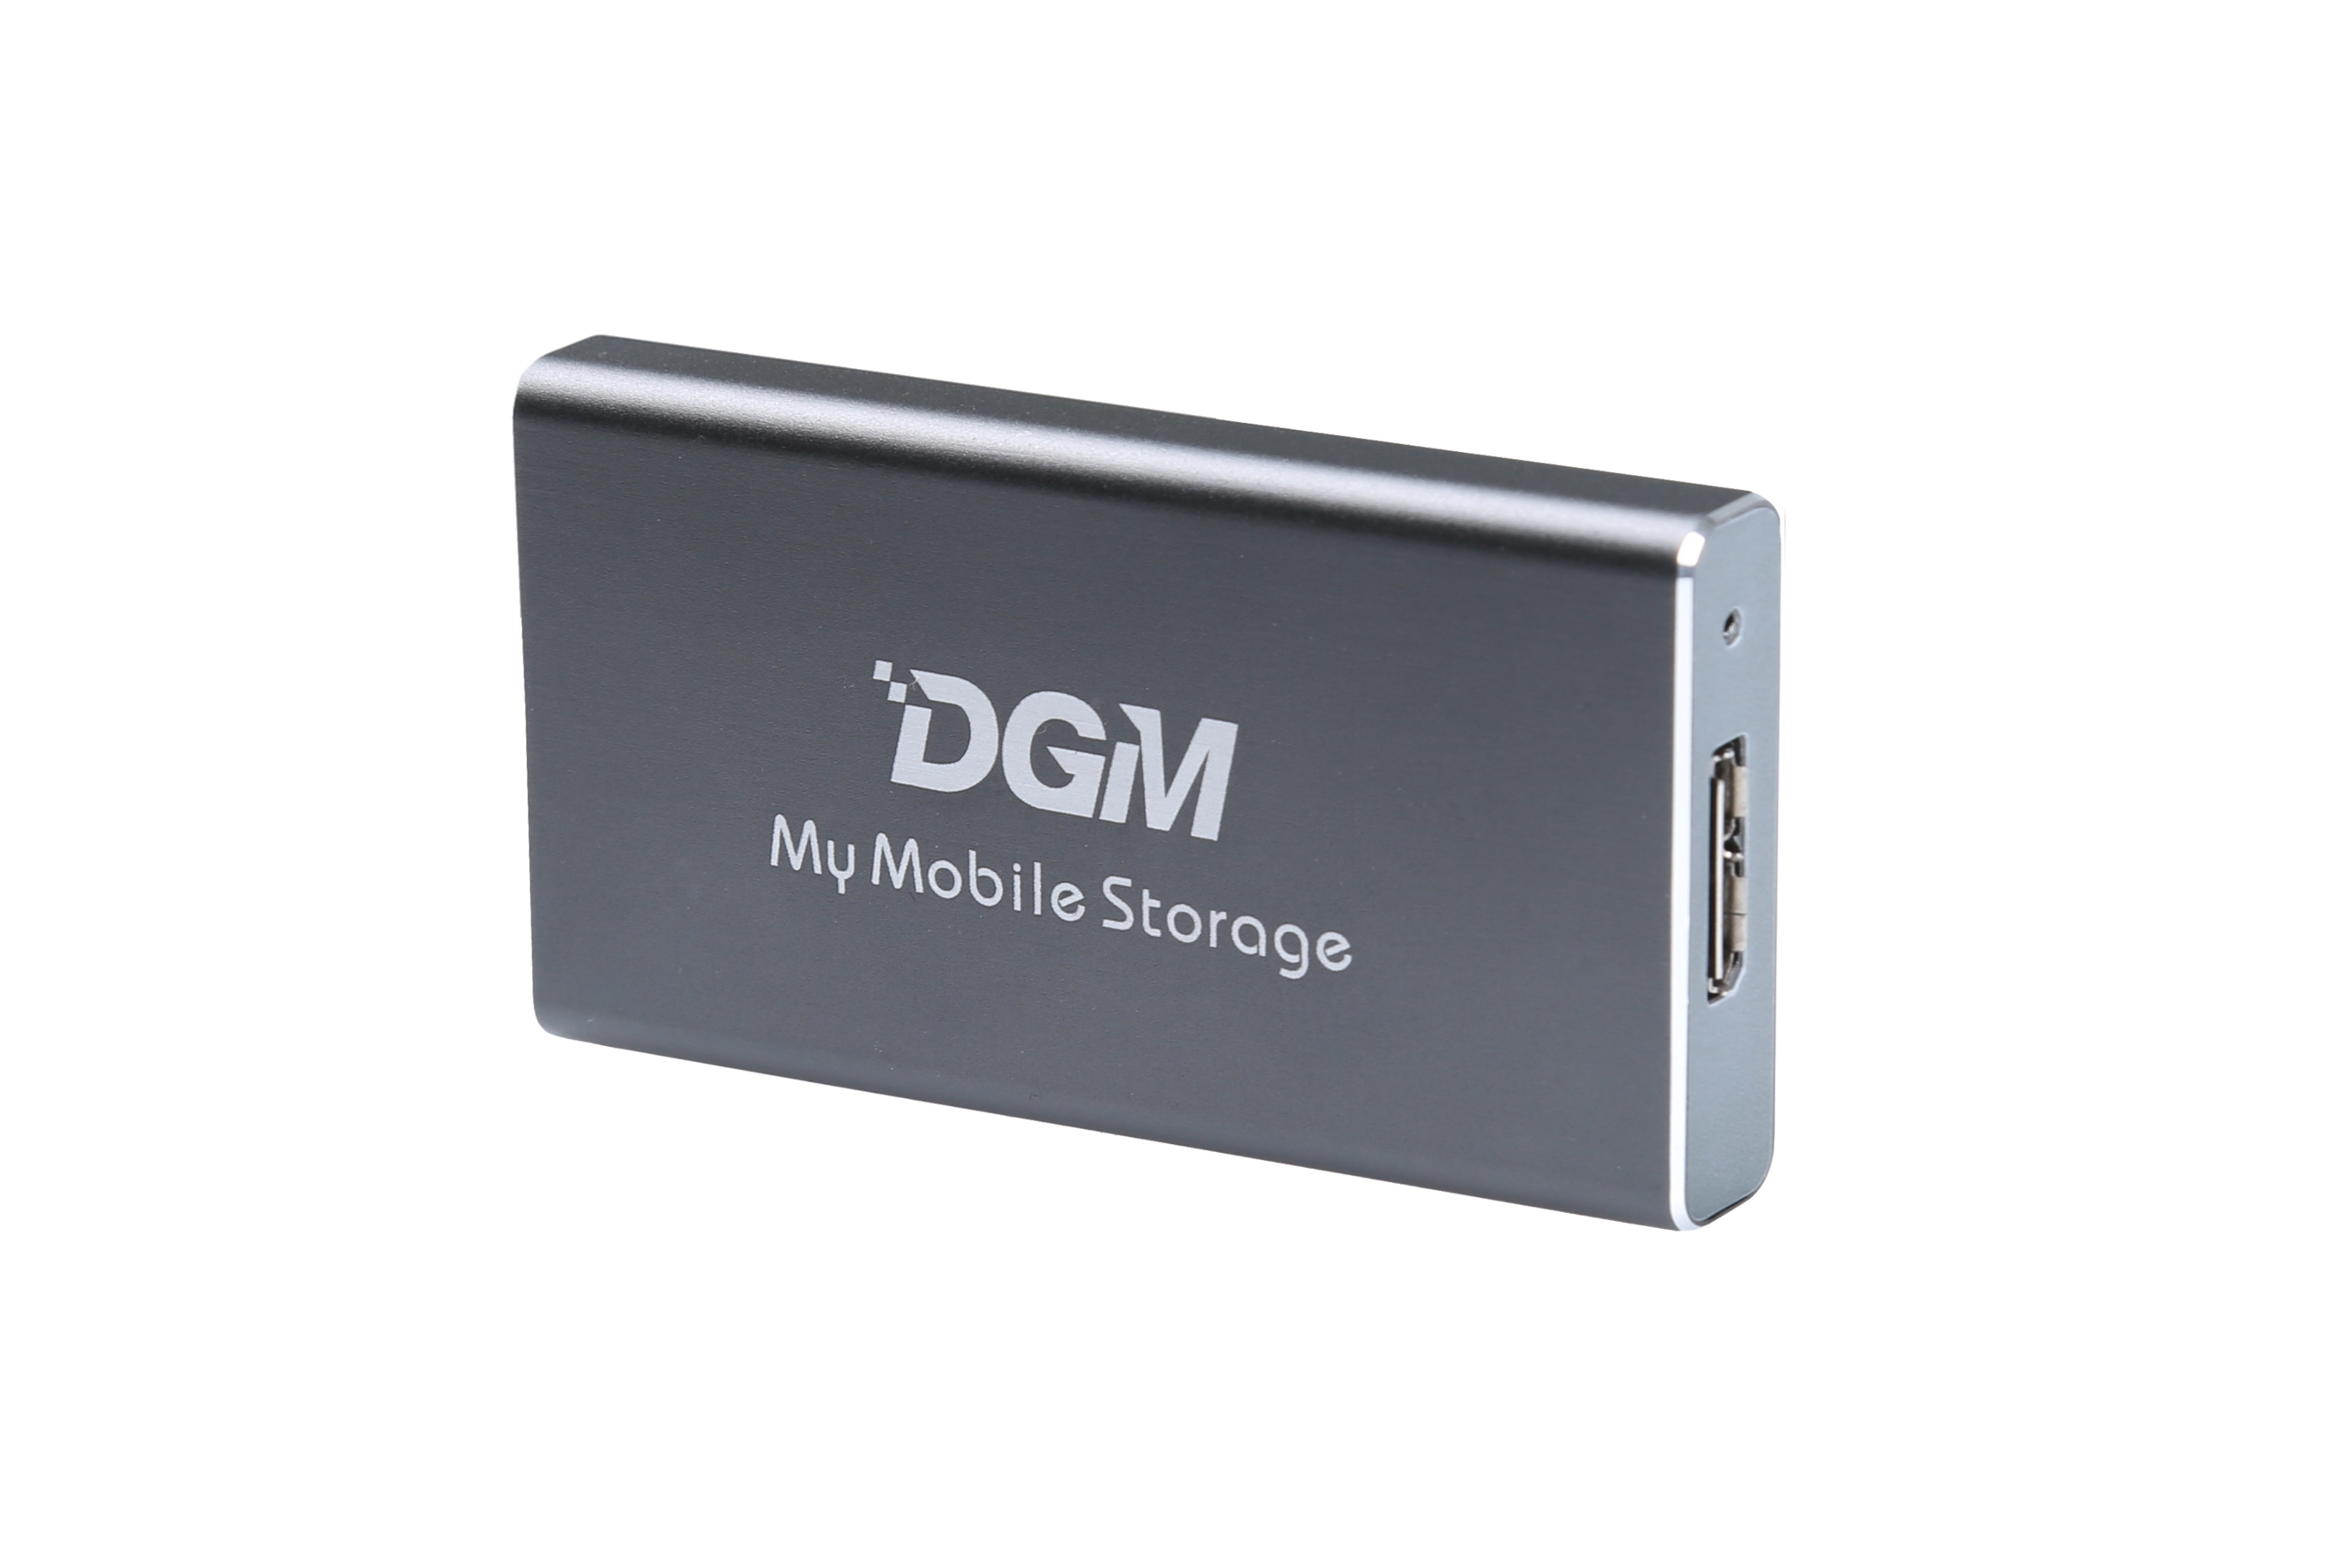 CMYK - DGM My Mobile Storage - MMS512SG